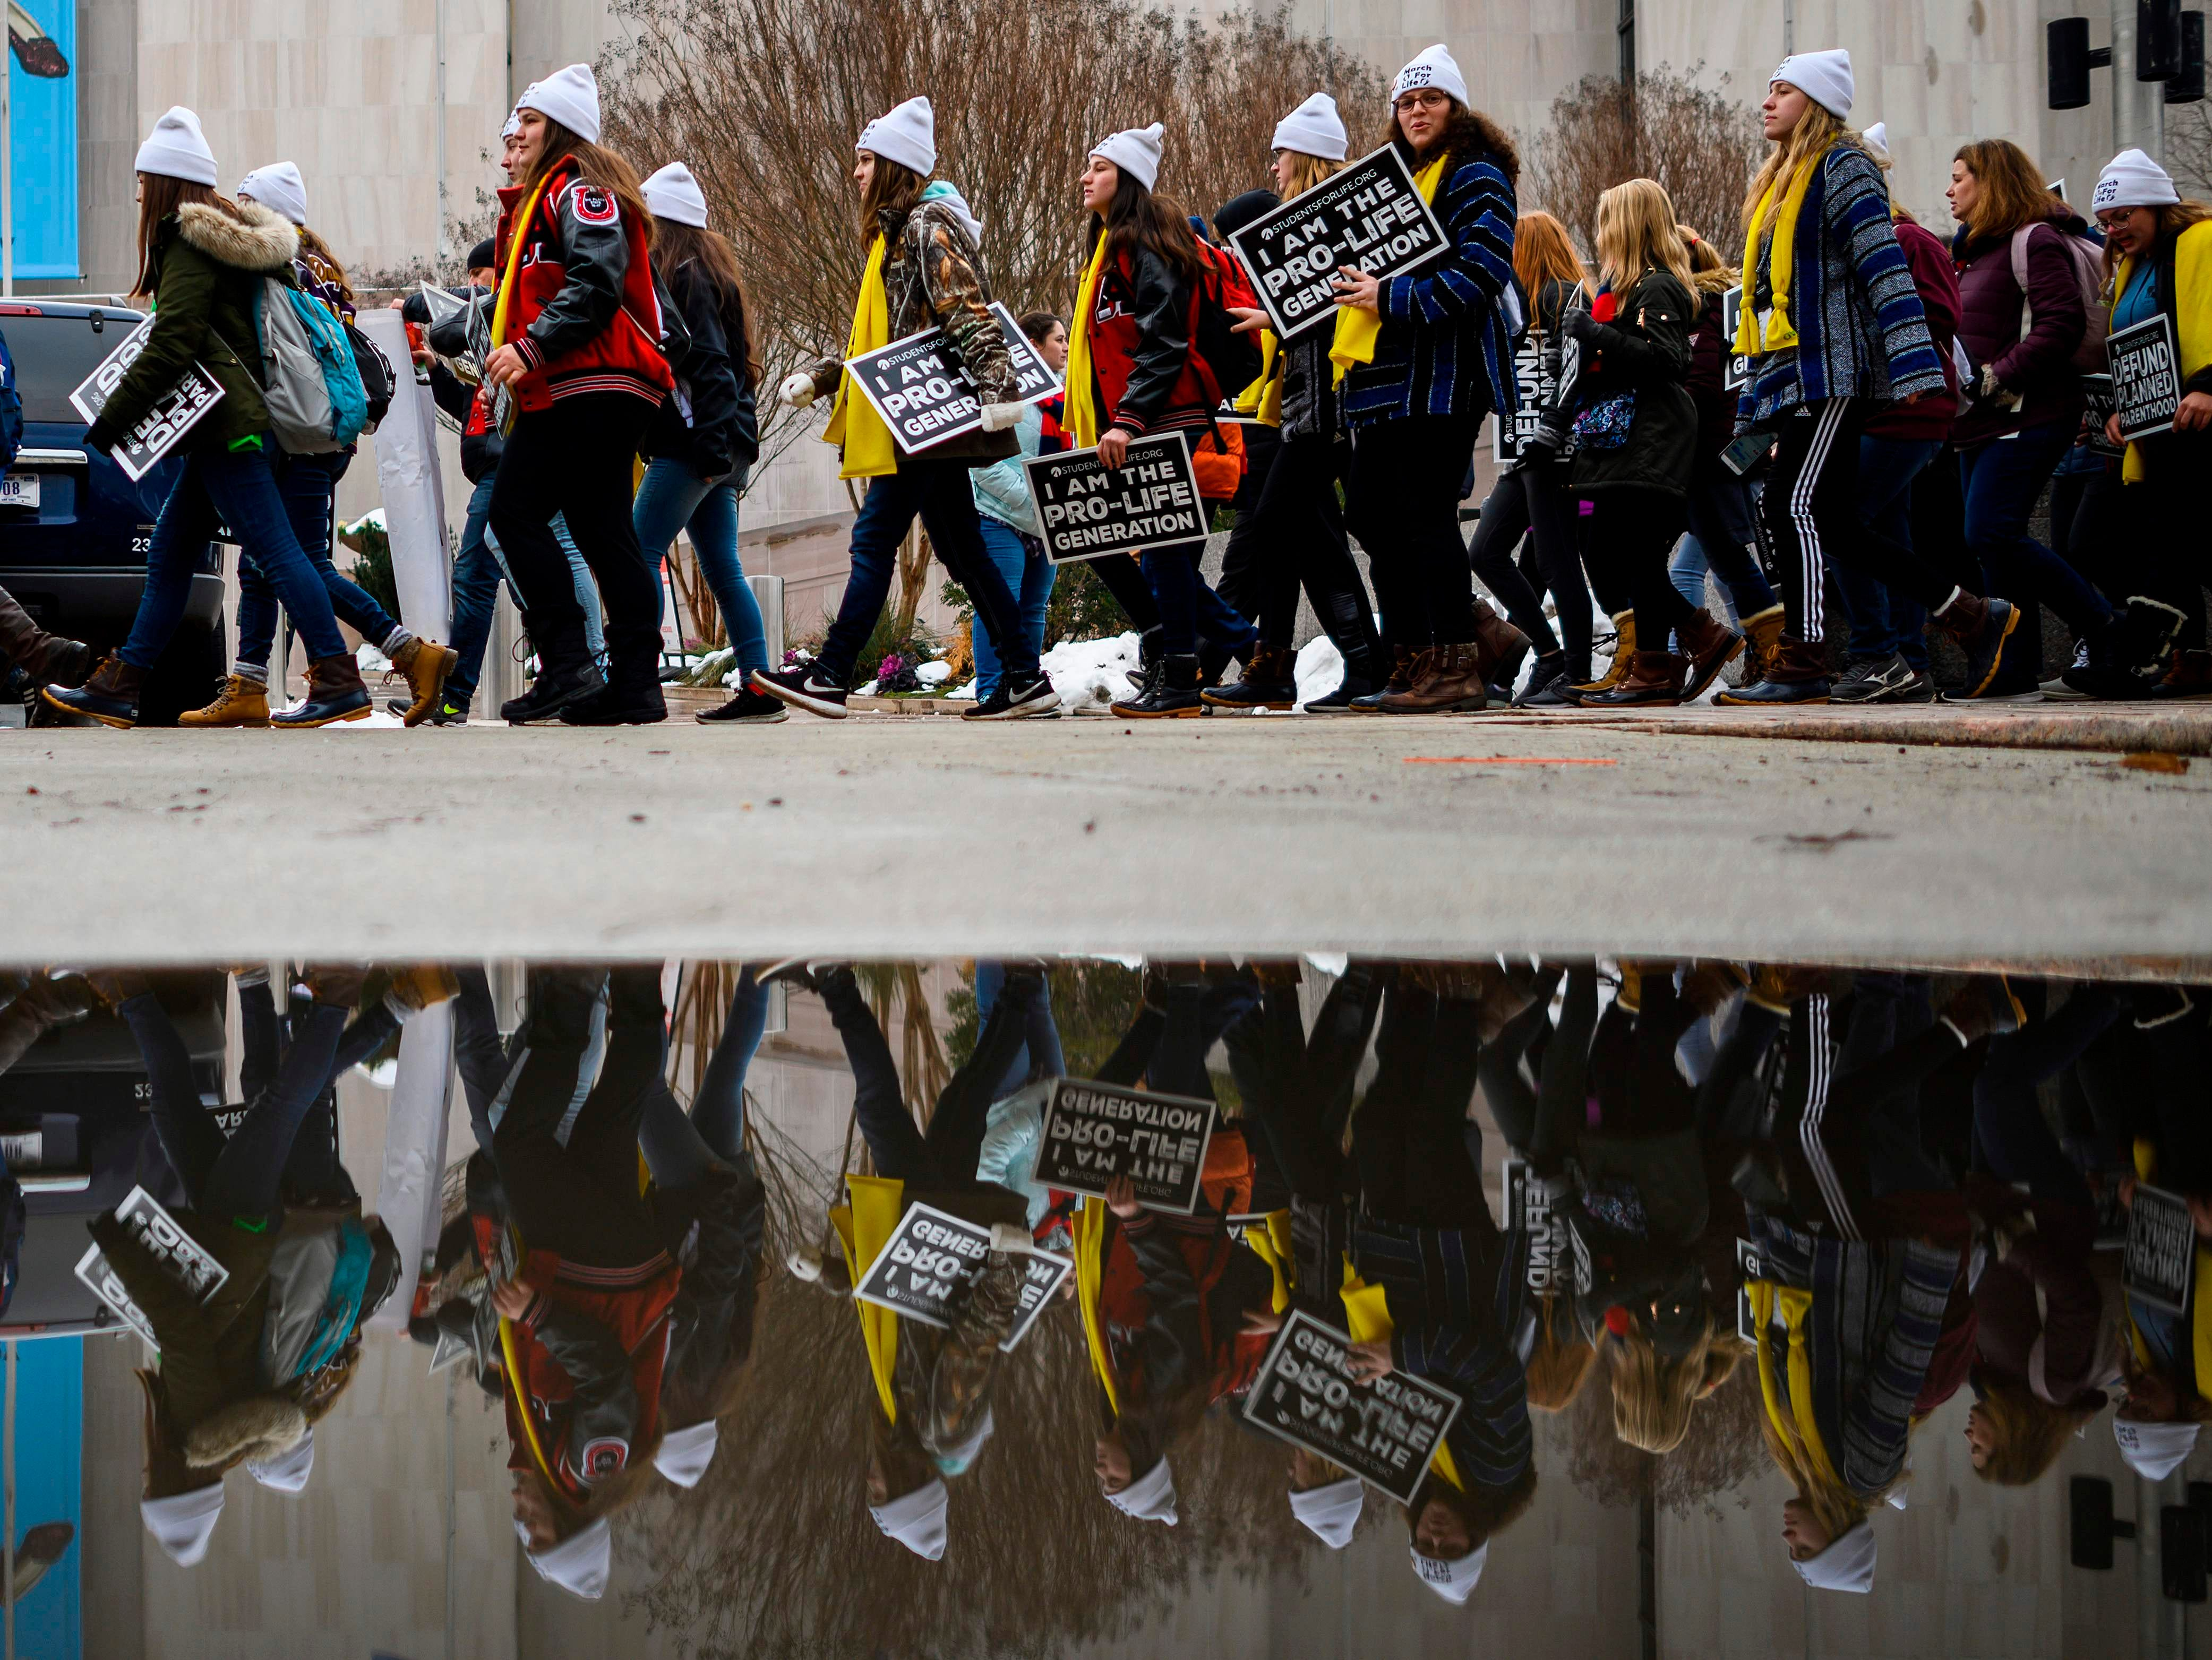 Students and activists carry signs during the annual March for Life in Washington, DC on Jan. 18, 2019.